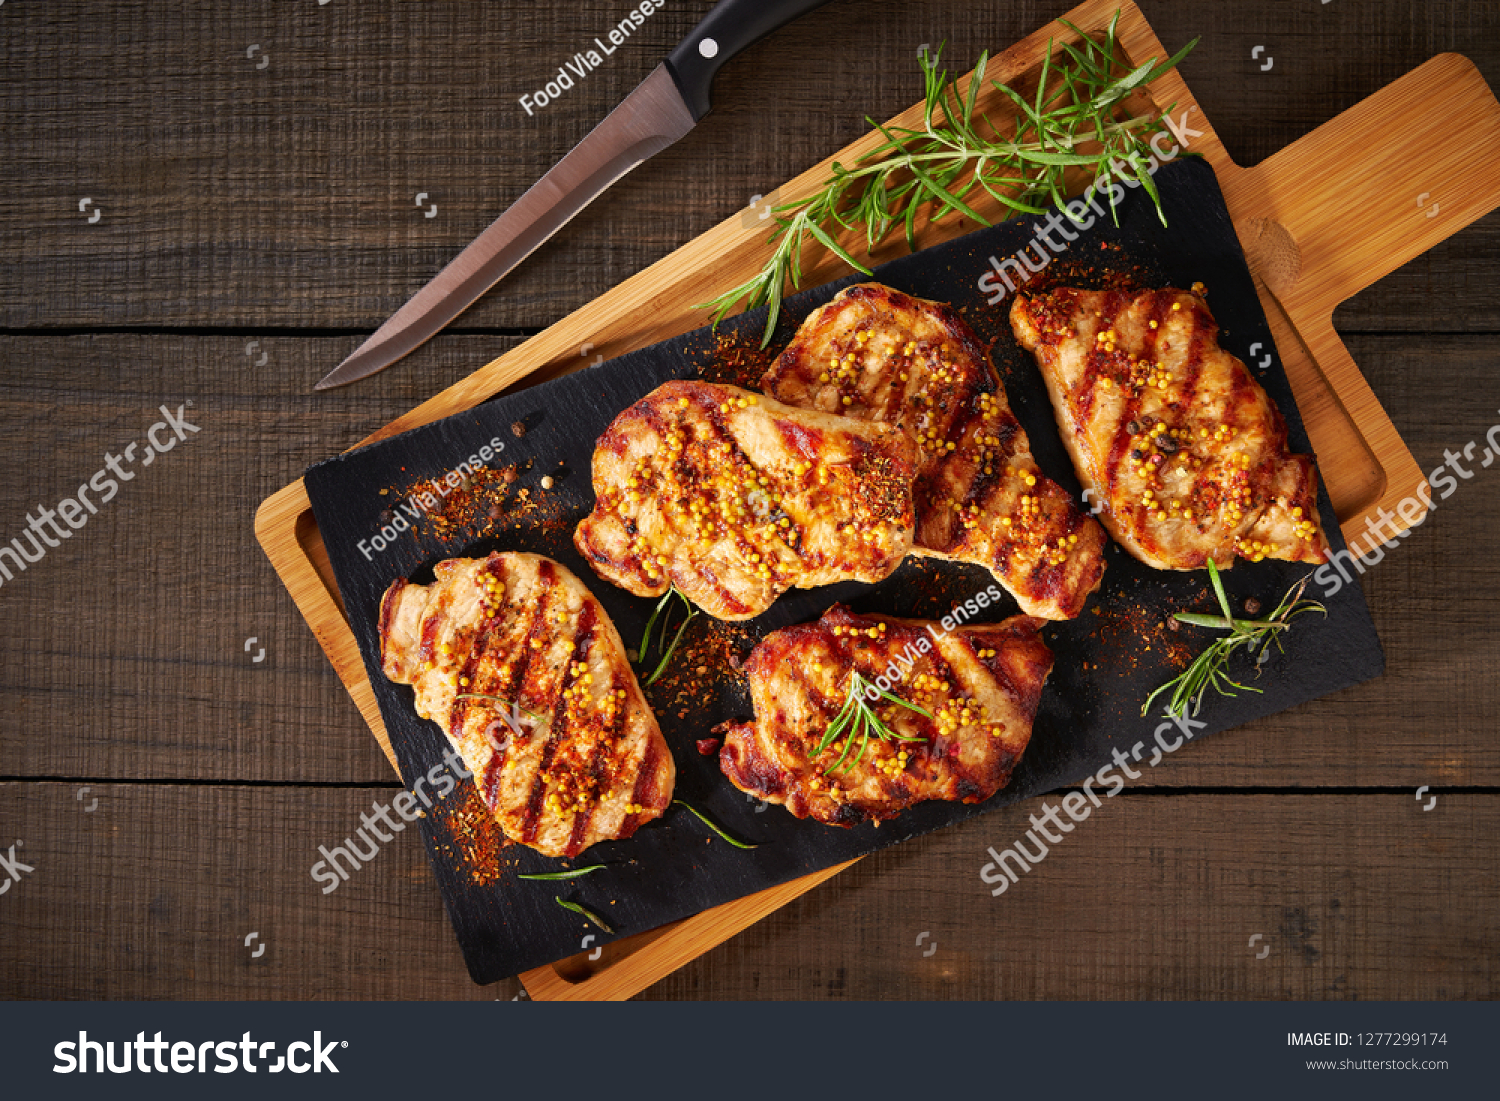 Tender boneless grilled pork chops, top view